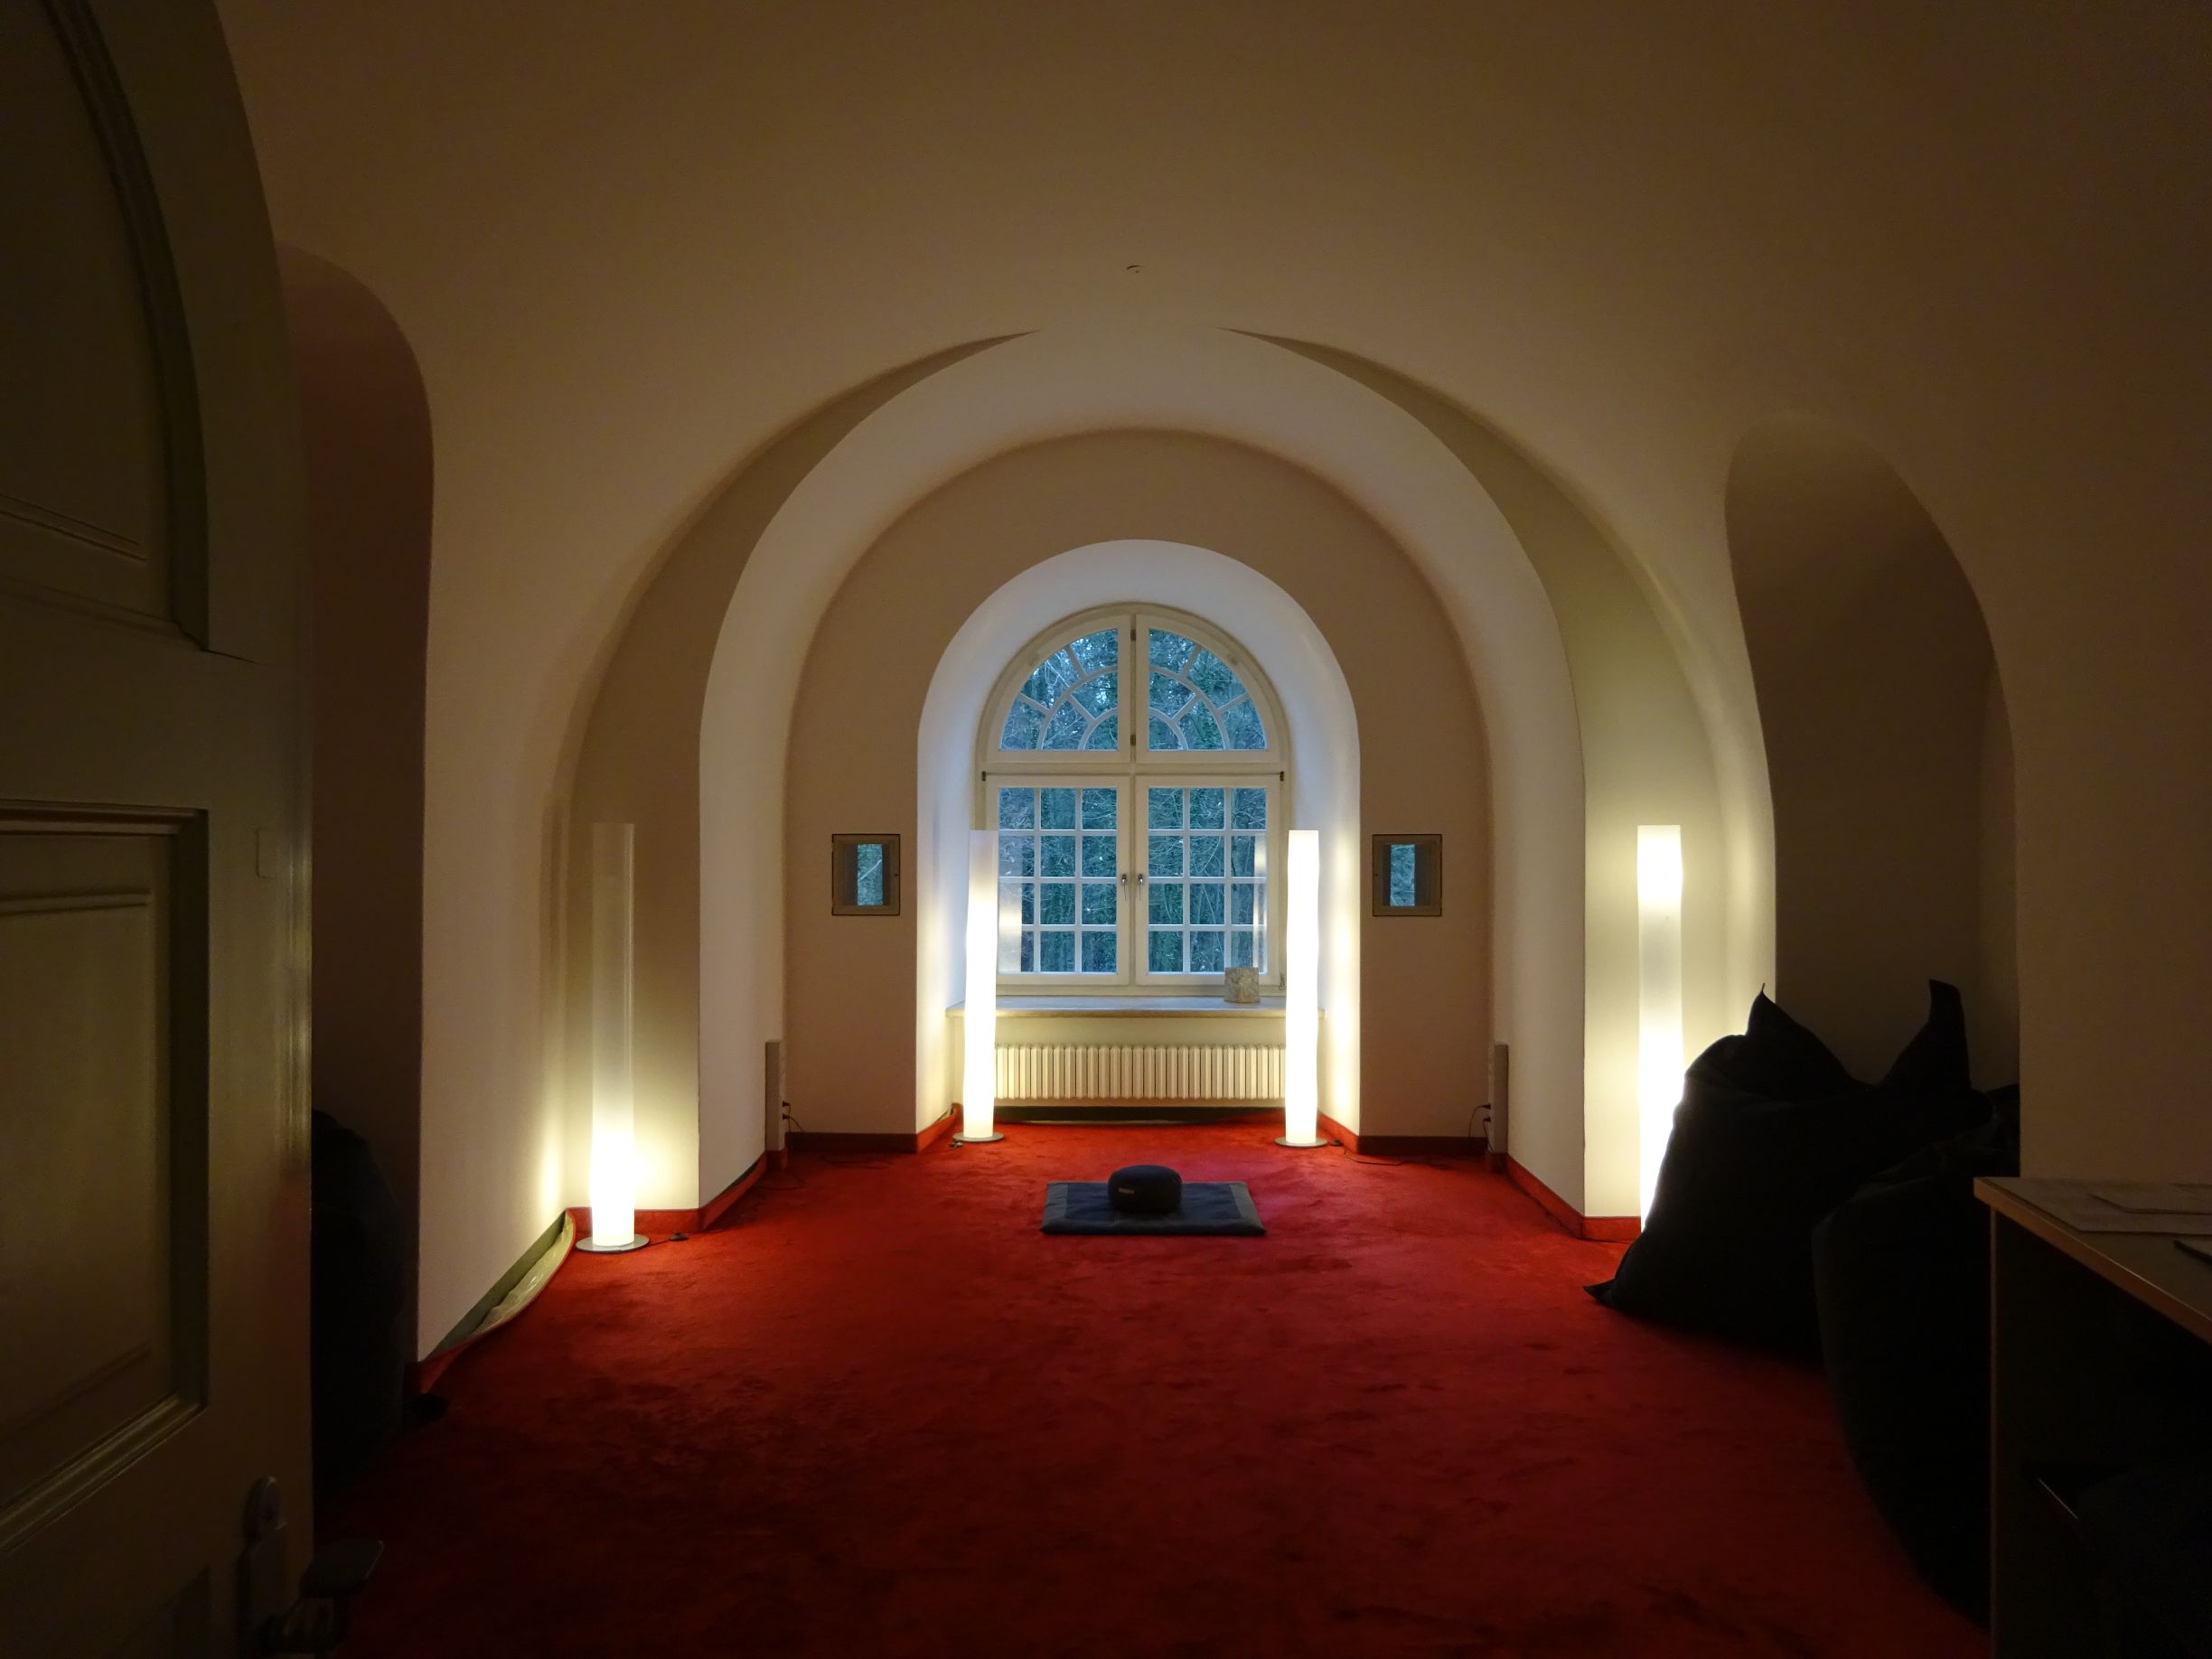 A discreetly lit room with red carpet and high arched window